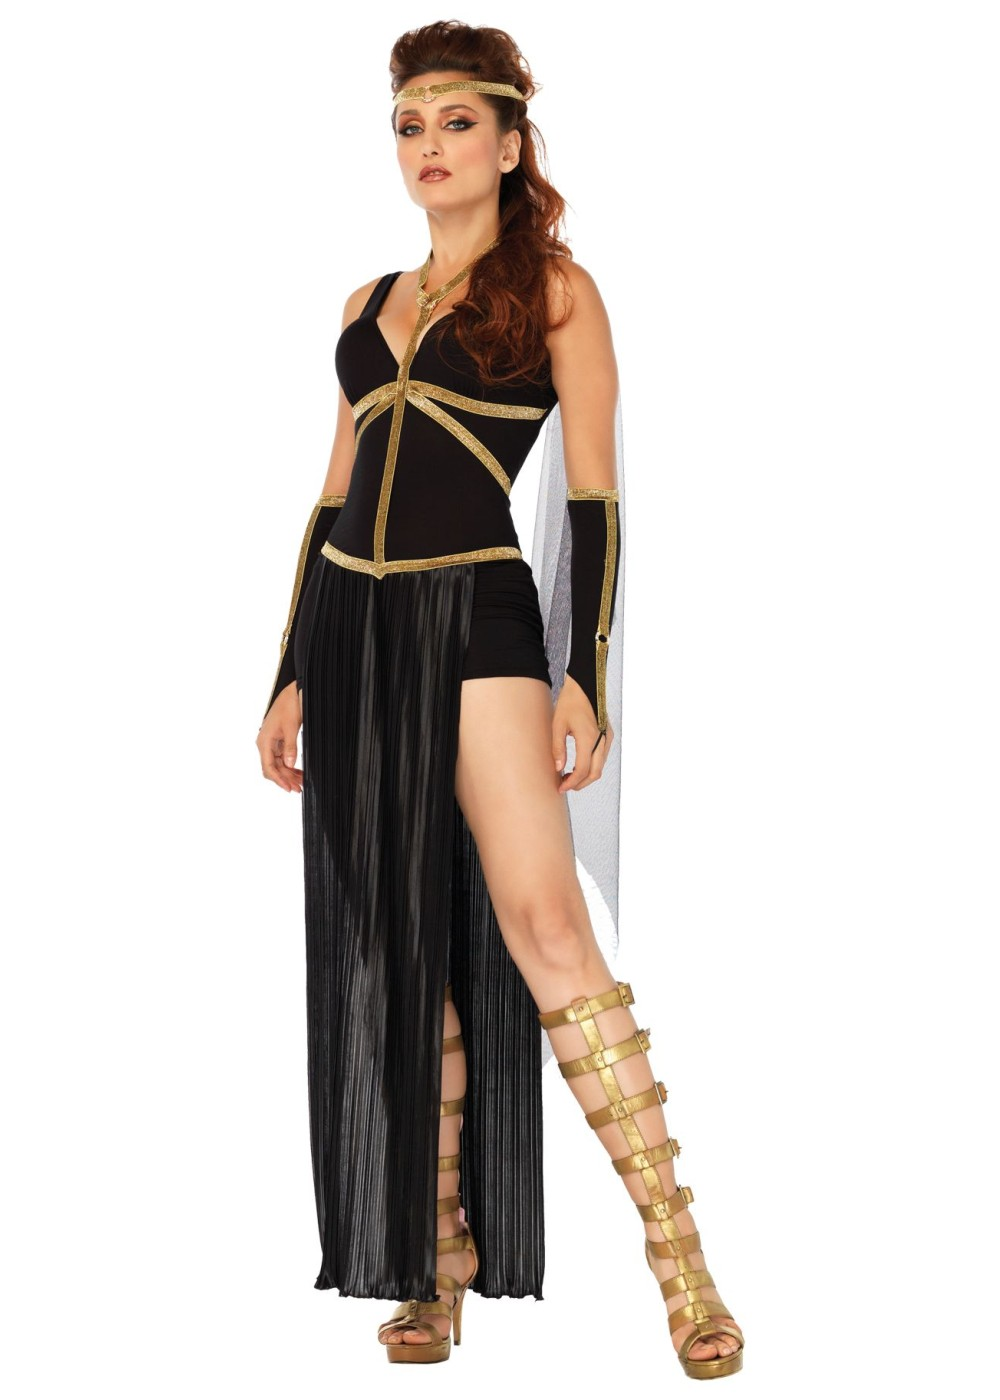 dark goddess women costume